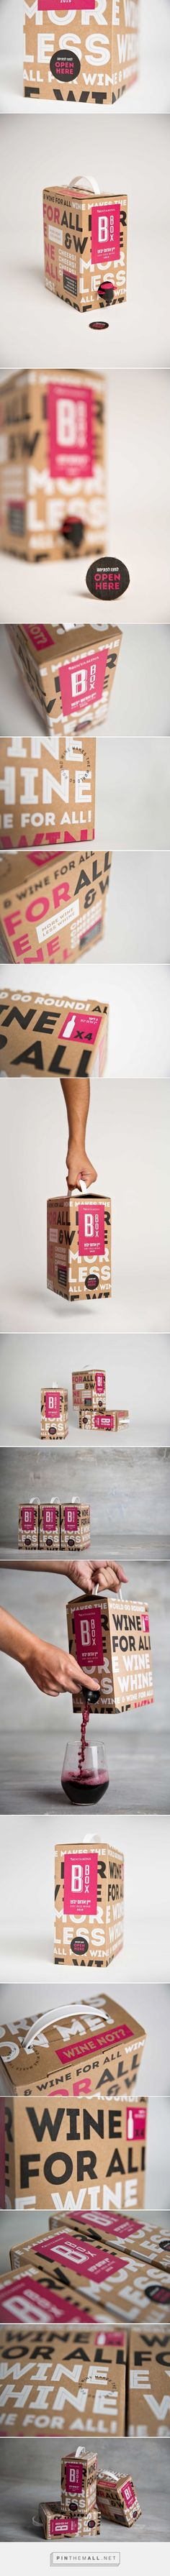 Bbox Box Wine packaging design by Awesome TLV (Israel) - http://www.packagingoftheworld.com/2016/08/bbox.html